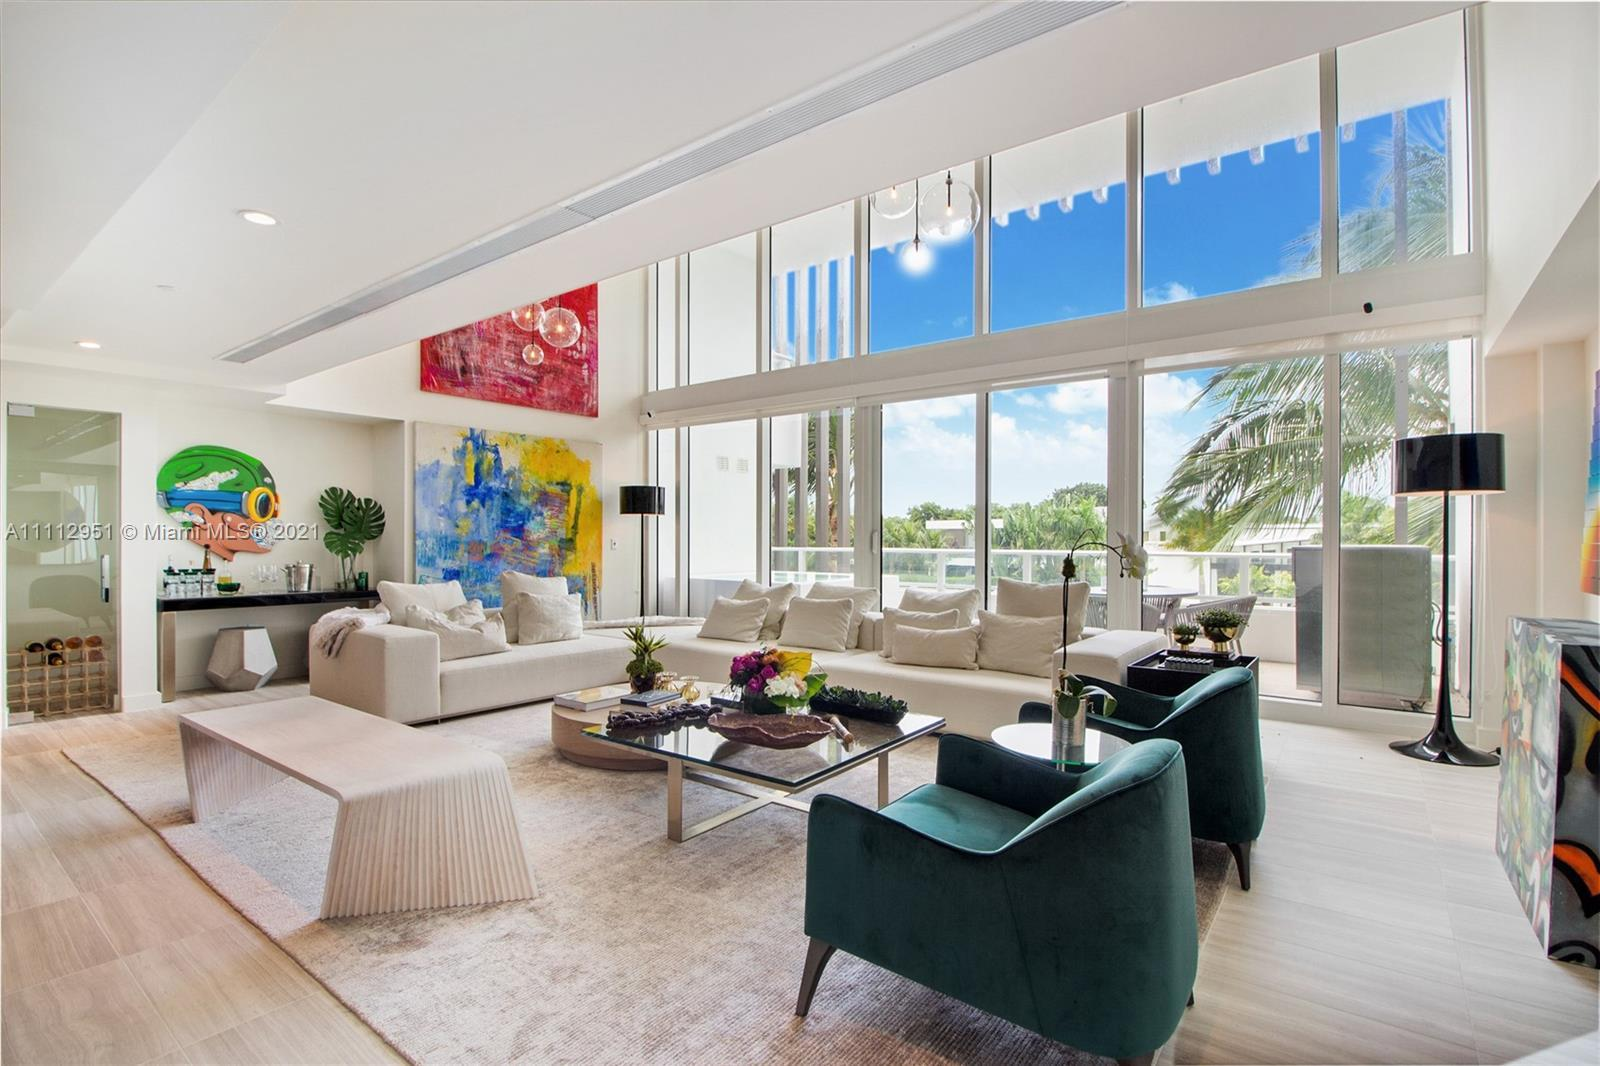 Luxury living at its finest! Enjoy the 5 star legendary the Ritz Carlton Service in this brand new r